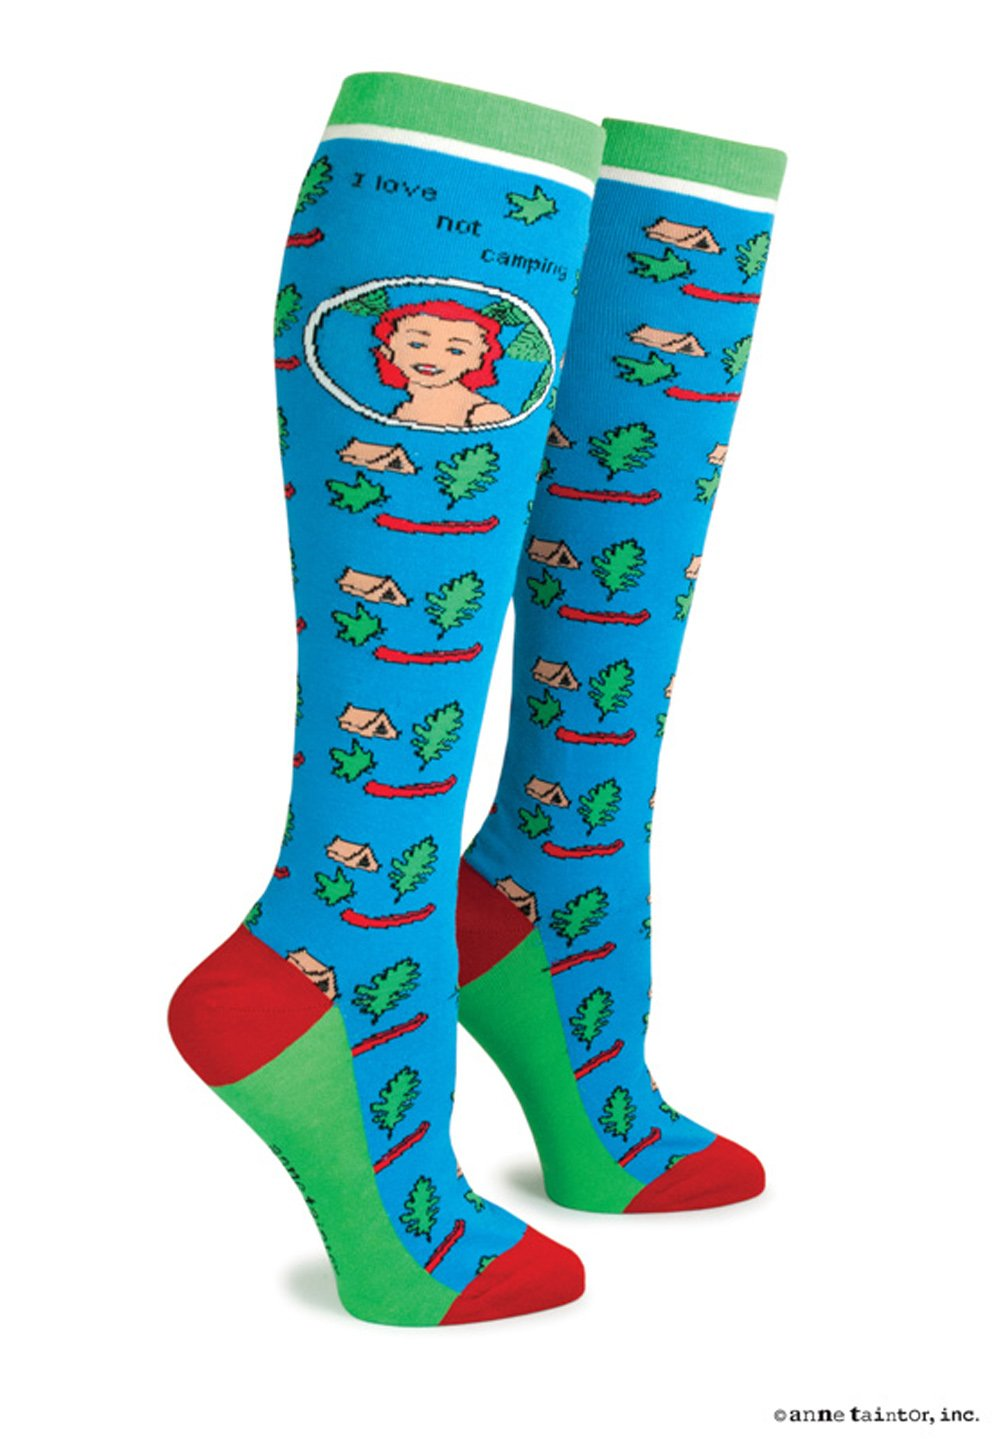 Anne Taintor Women's Colorful Patterned Cotton Knee Socks - I Love Not Camping